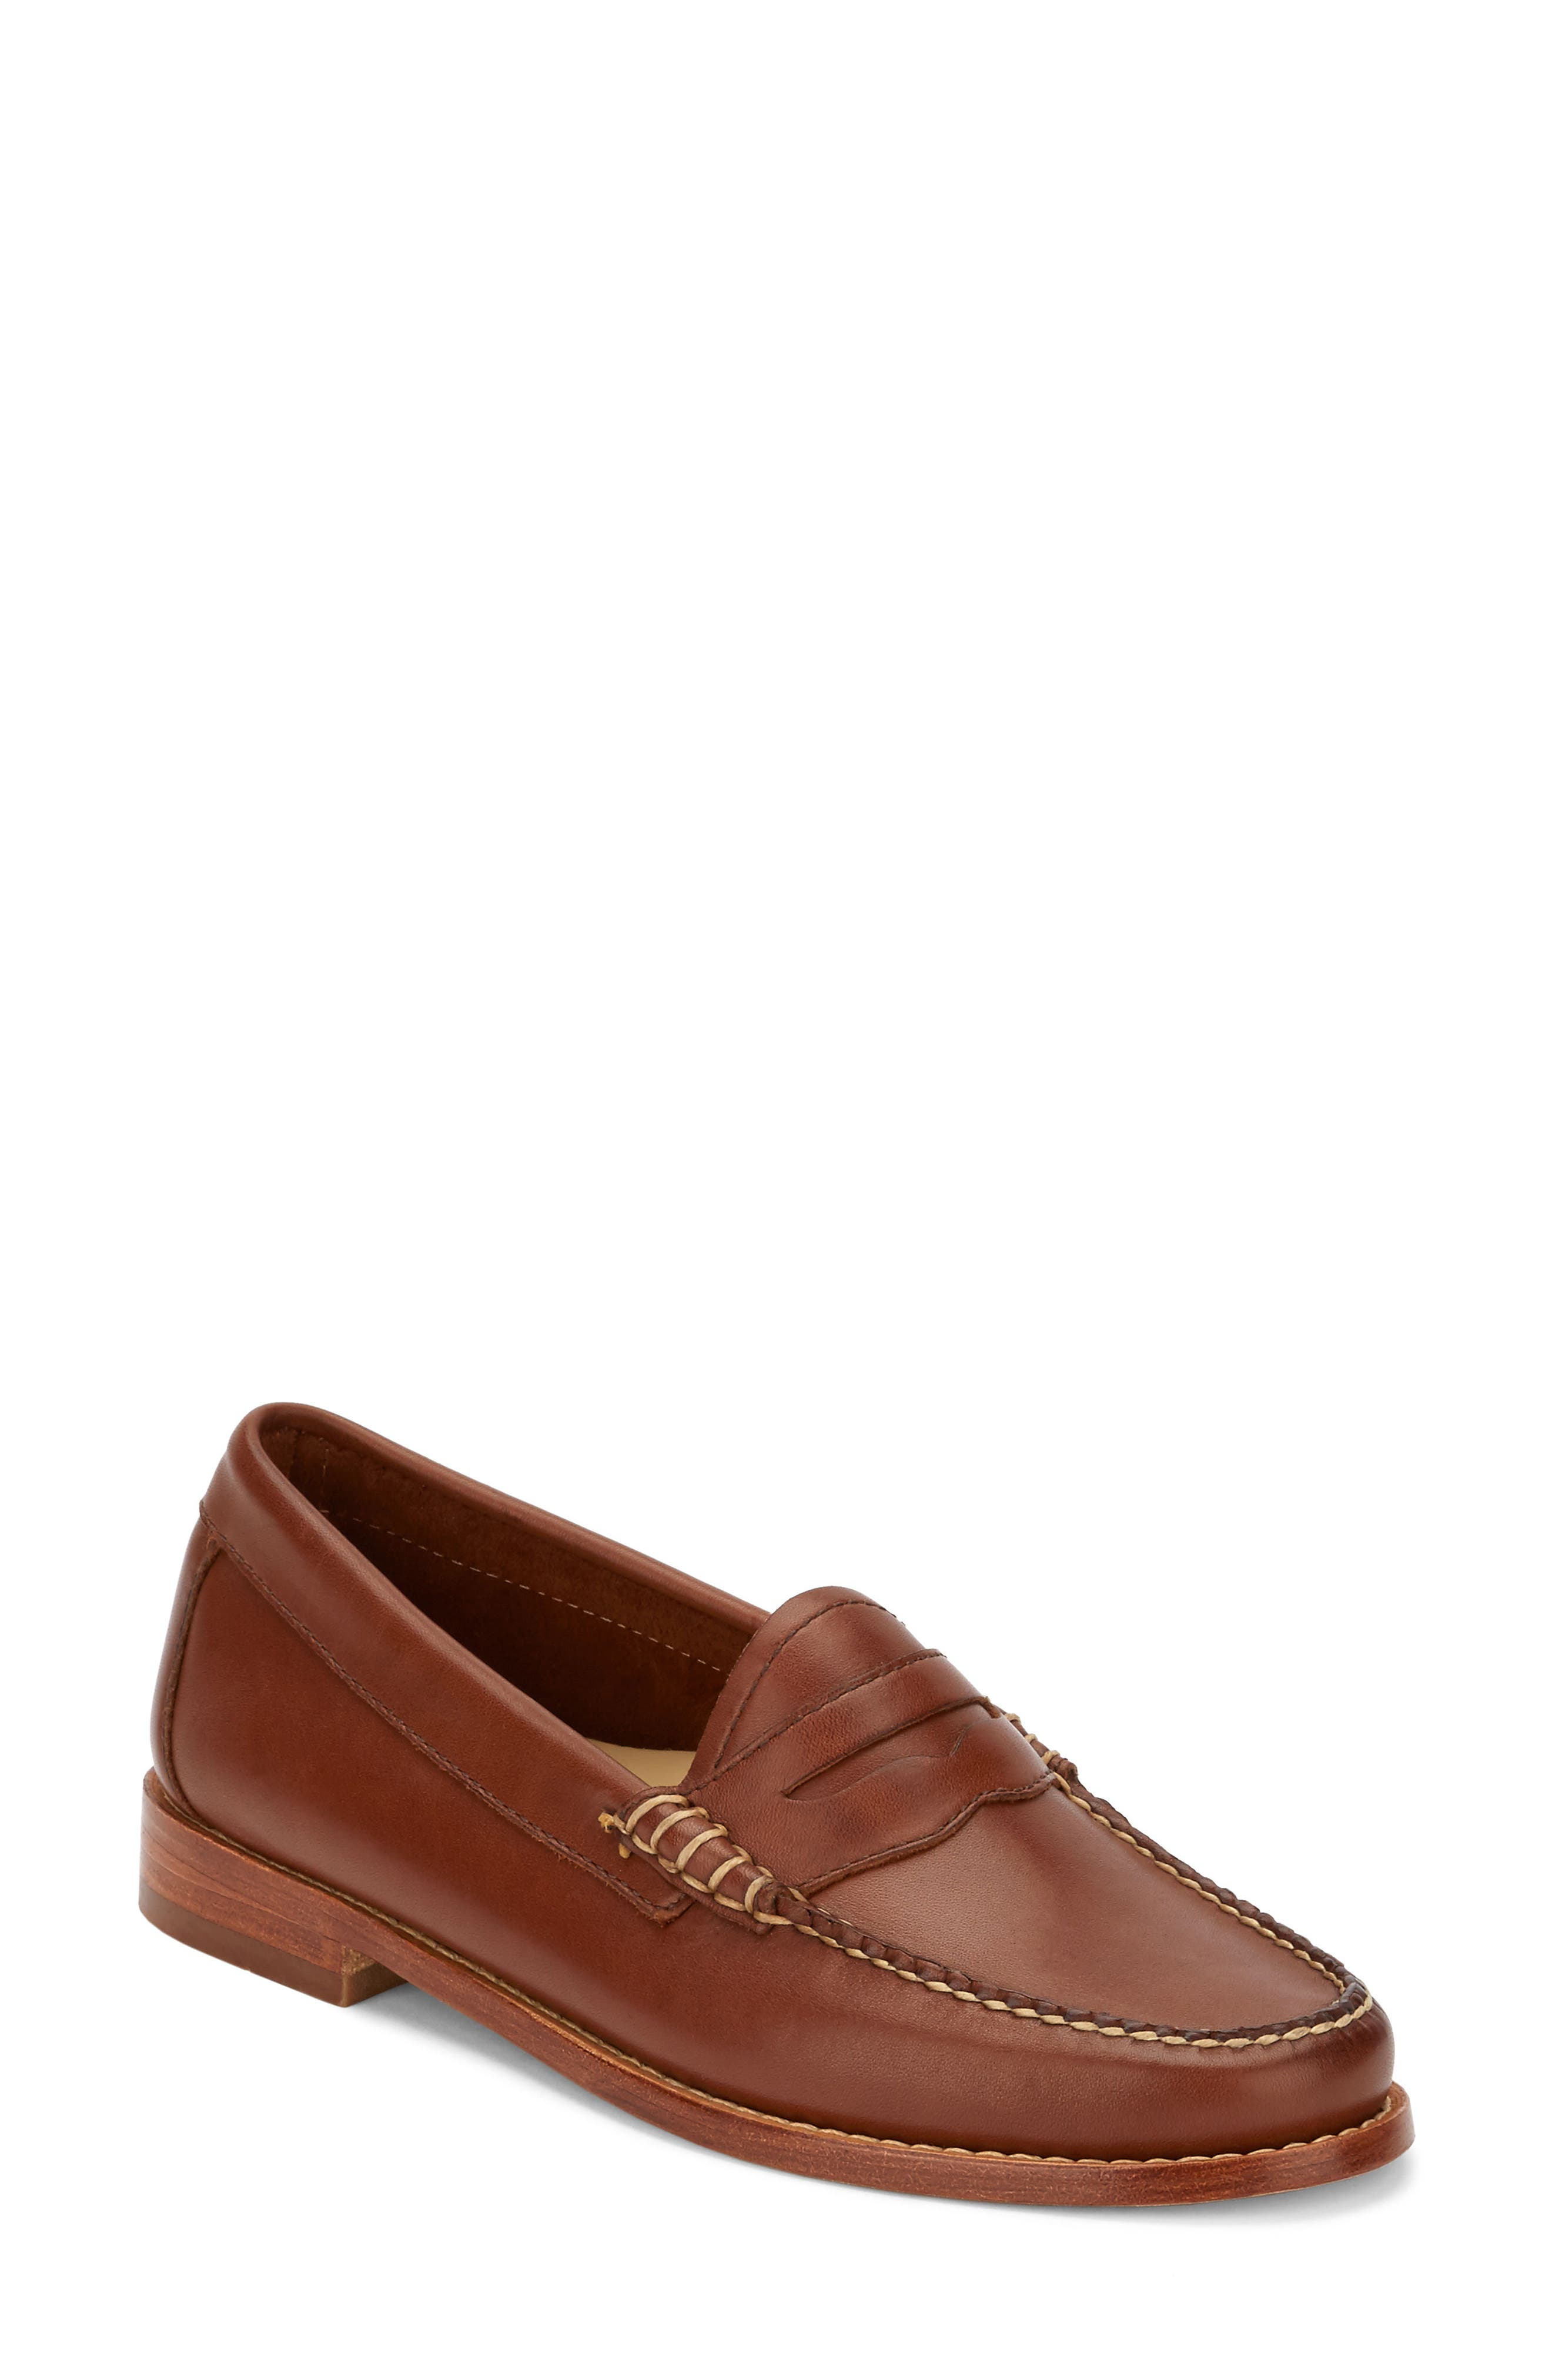 'Whitney' Loafer,                             Main thumbnail 1, color,                             COGNAC LEATHER